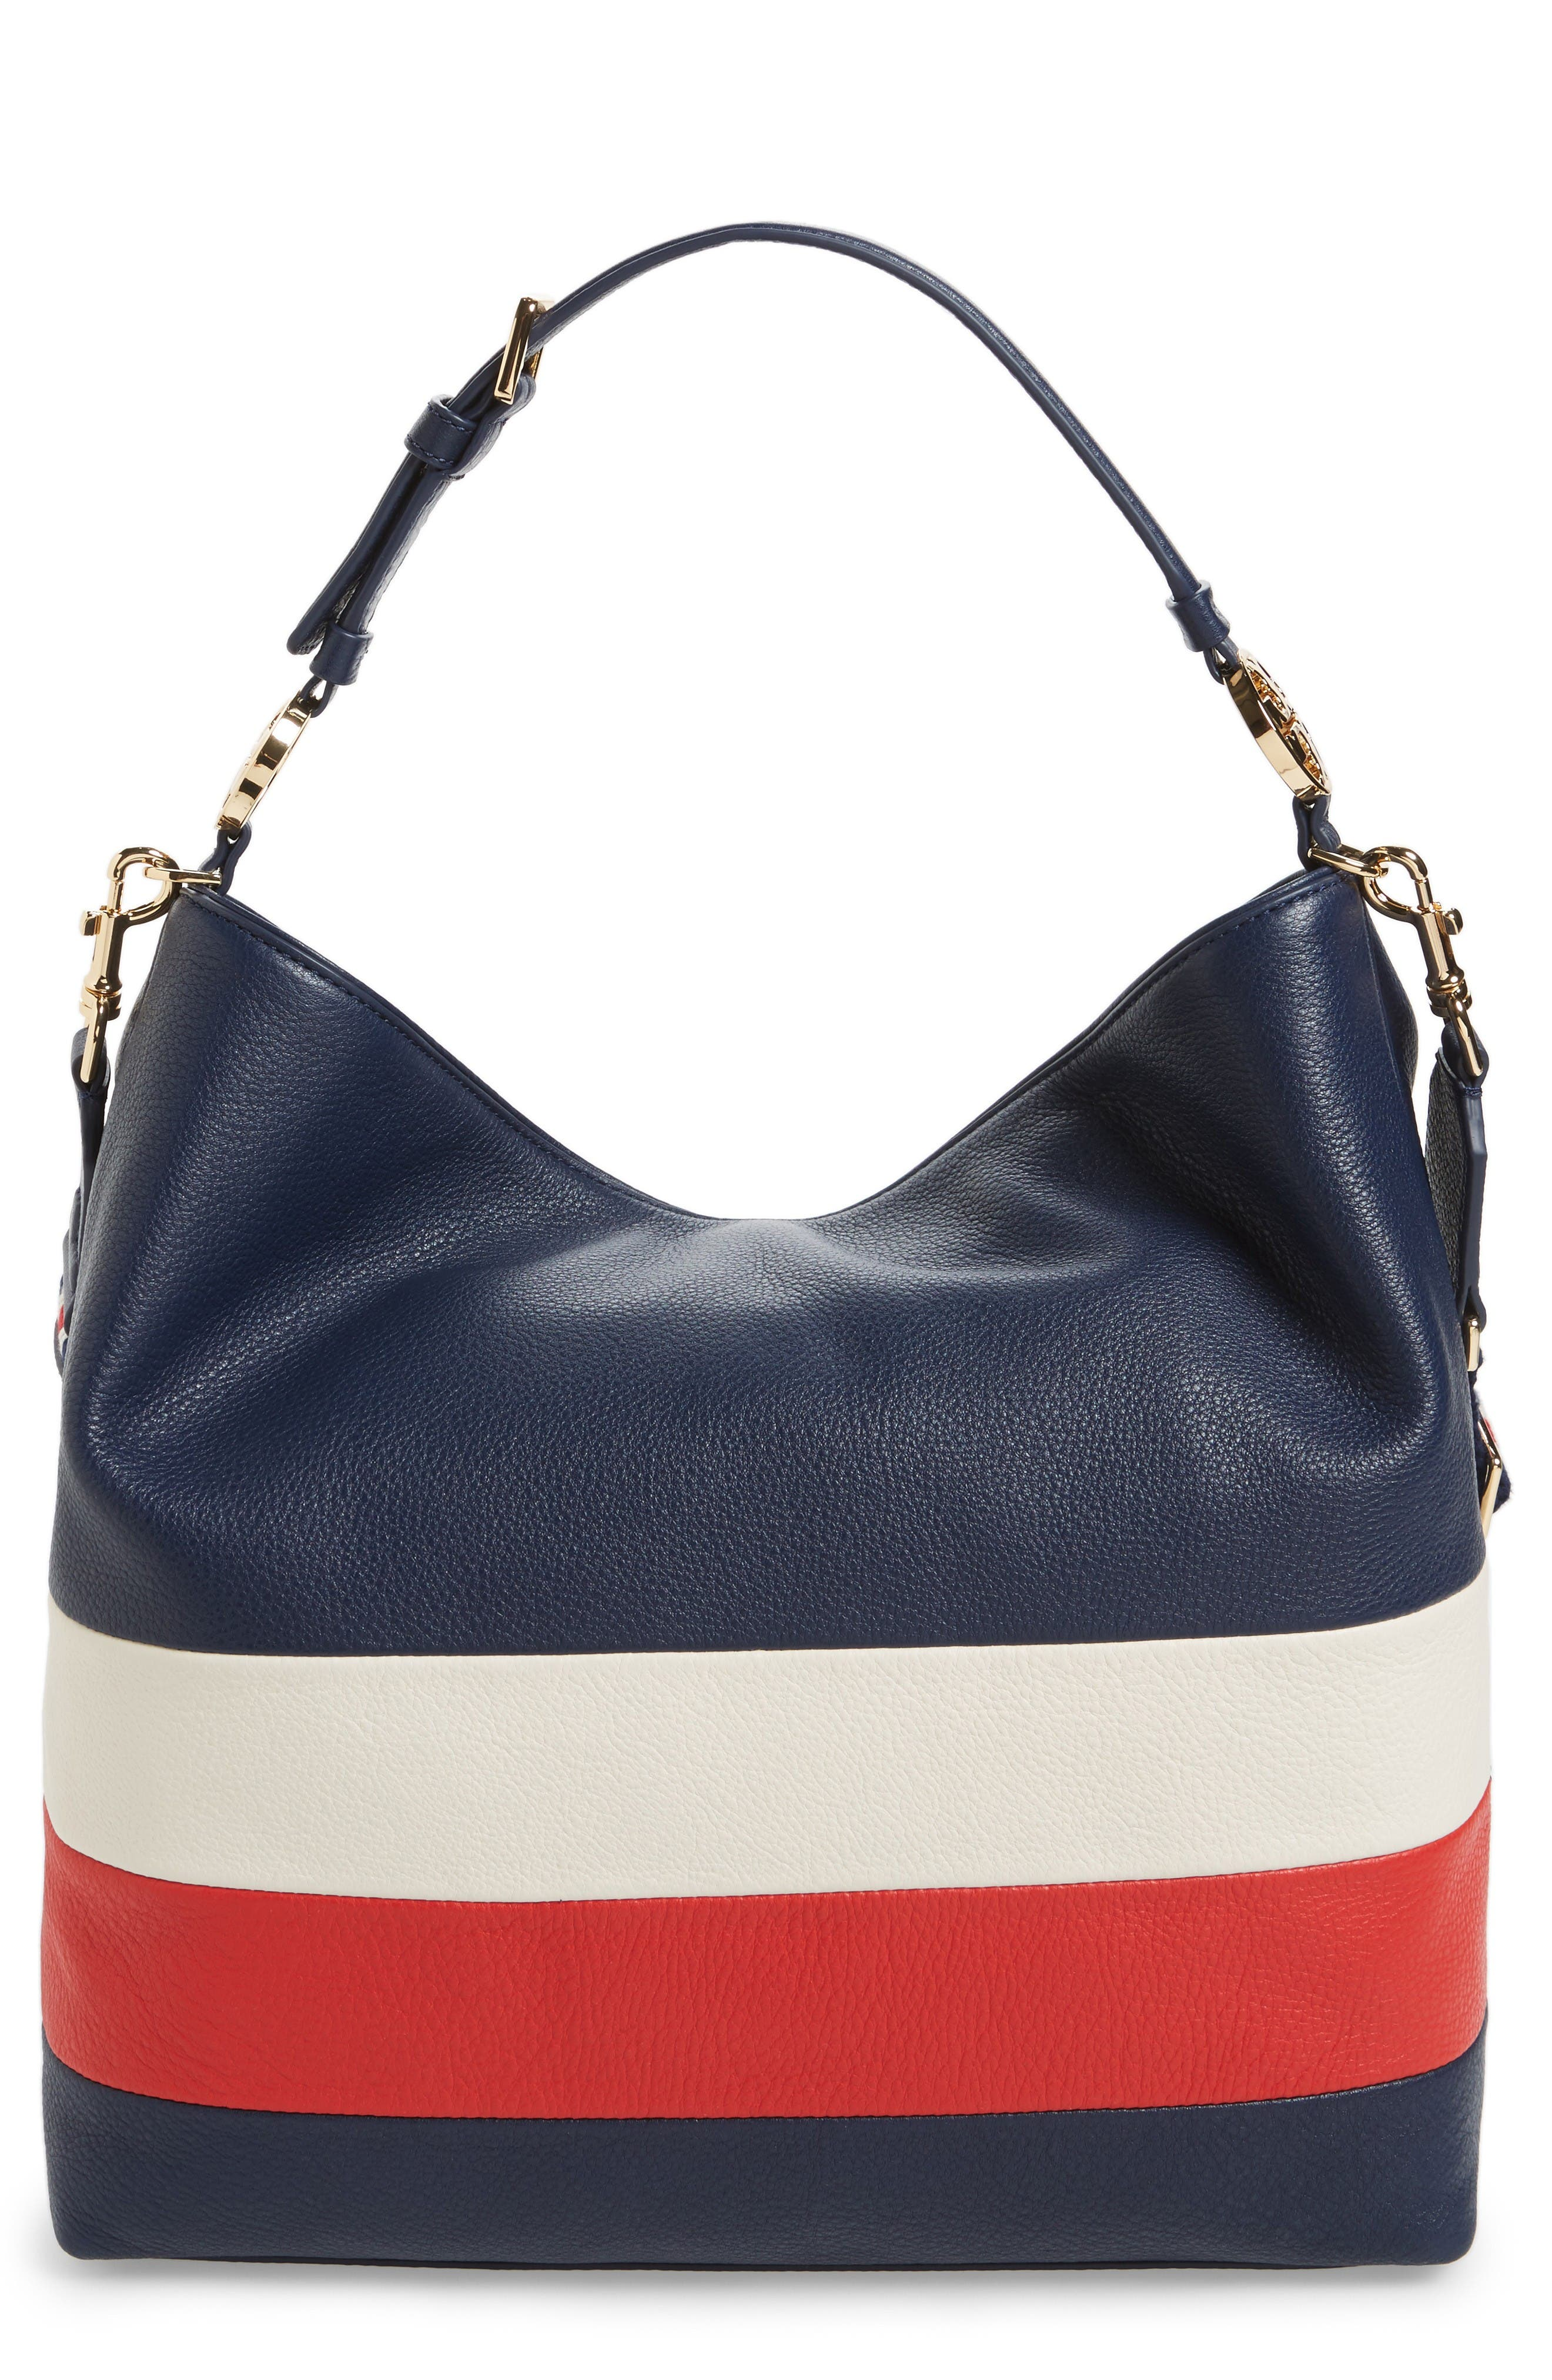 Alternate Image 1 Selected - Tory Burch Stripe Duet Leather Hobo